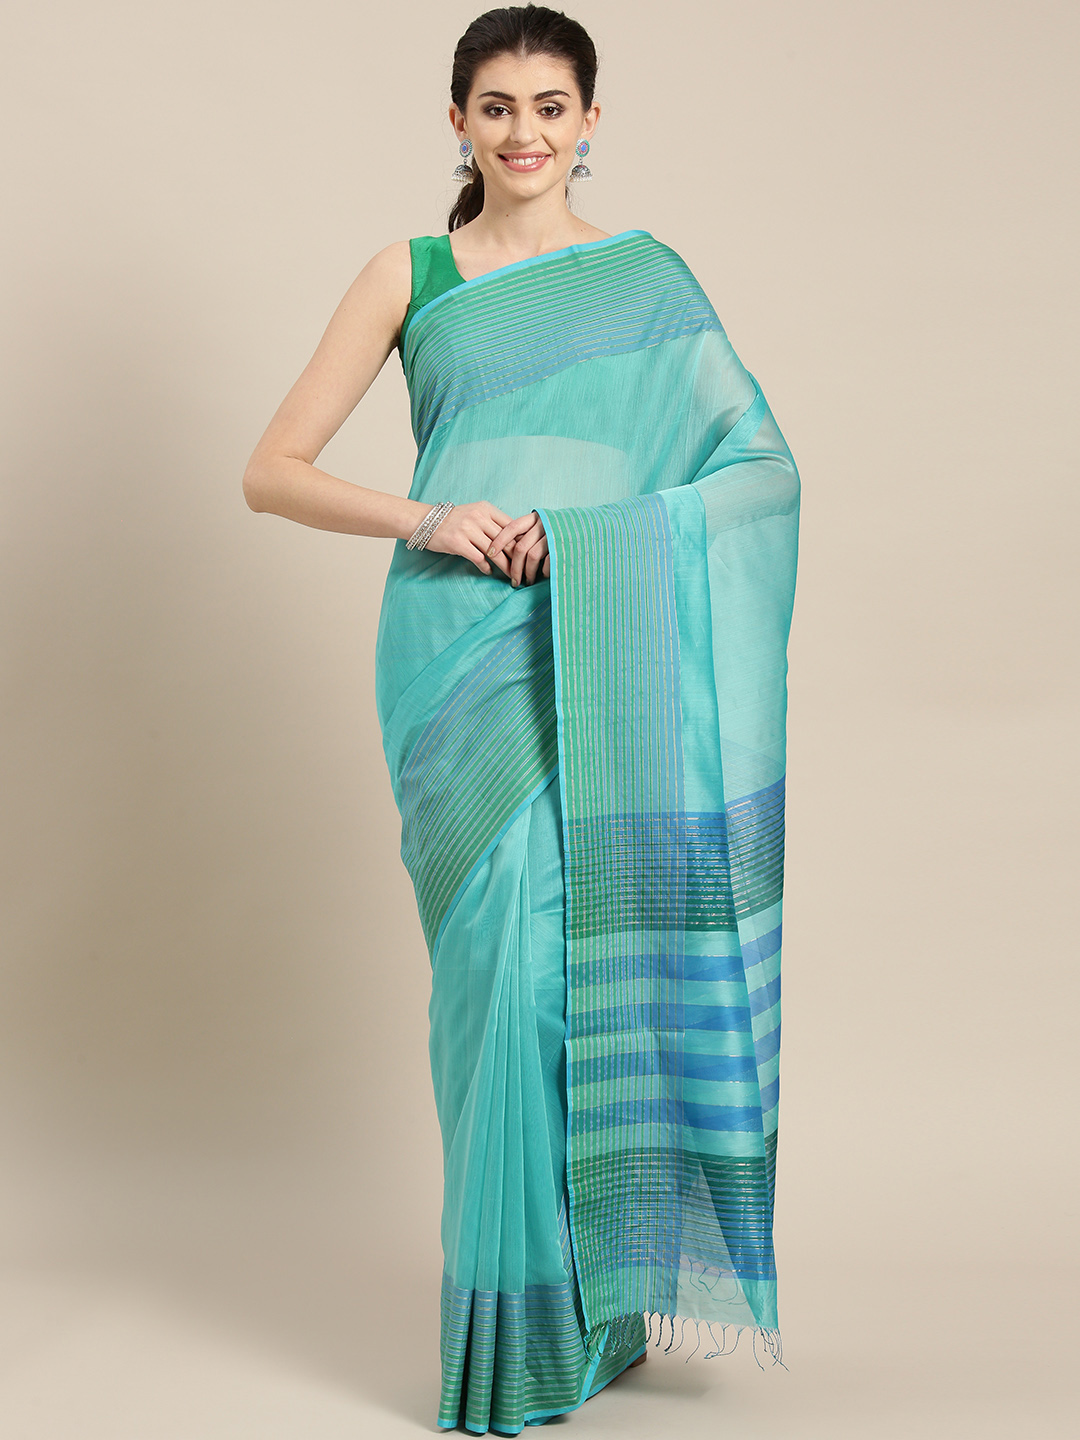 lal10 Turquoise Blue Solid Handloom Maheshwari Saree Price in India